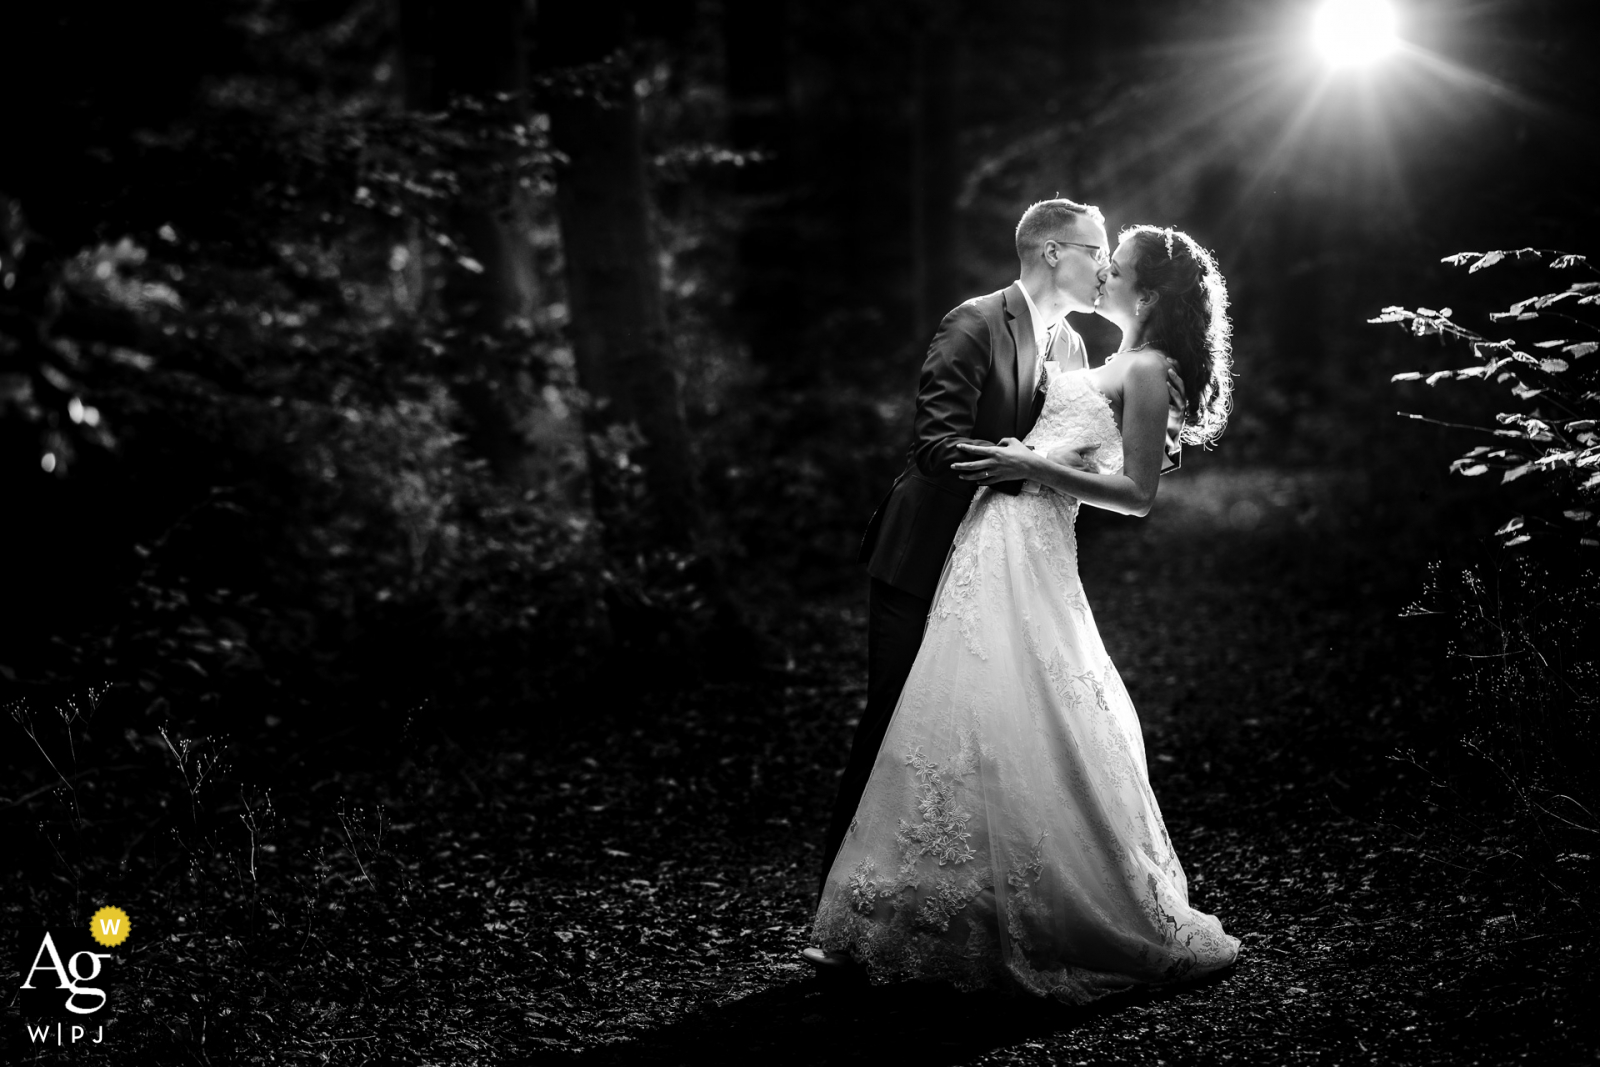 Heuchelberg artistic wedding portrait of a Kiss in b&w in the forest sunlight